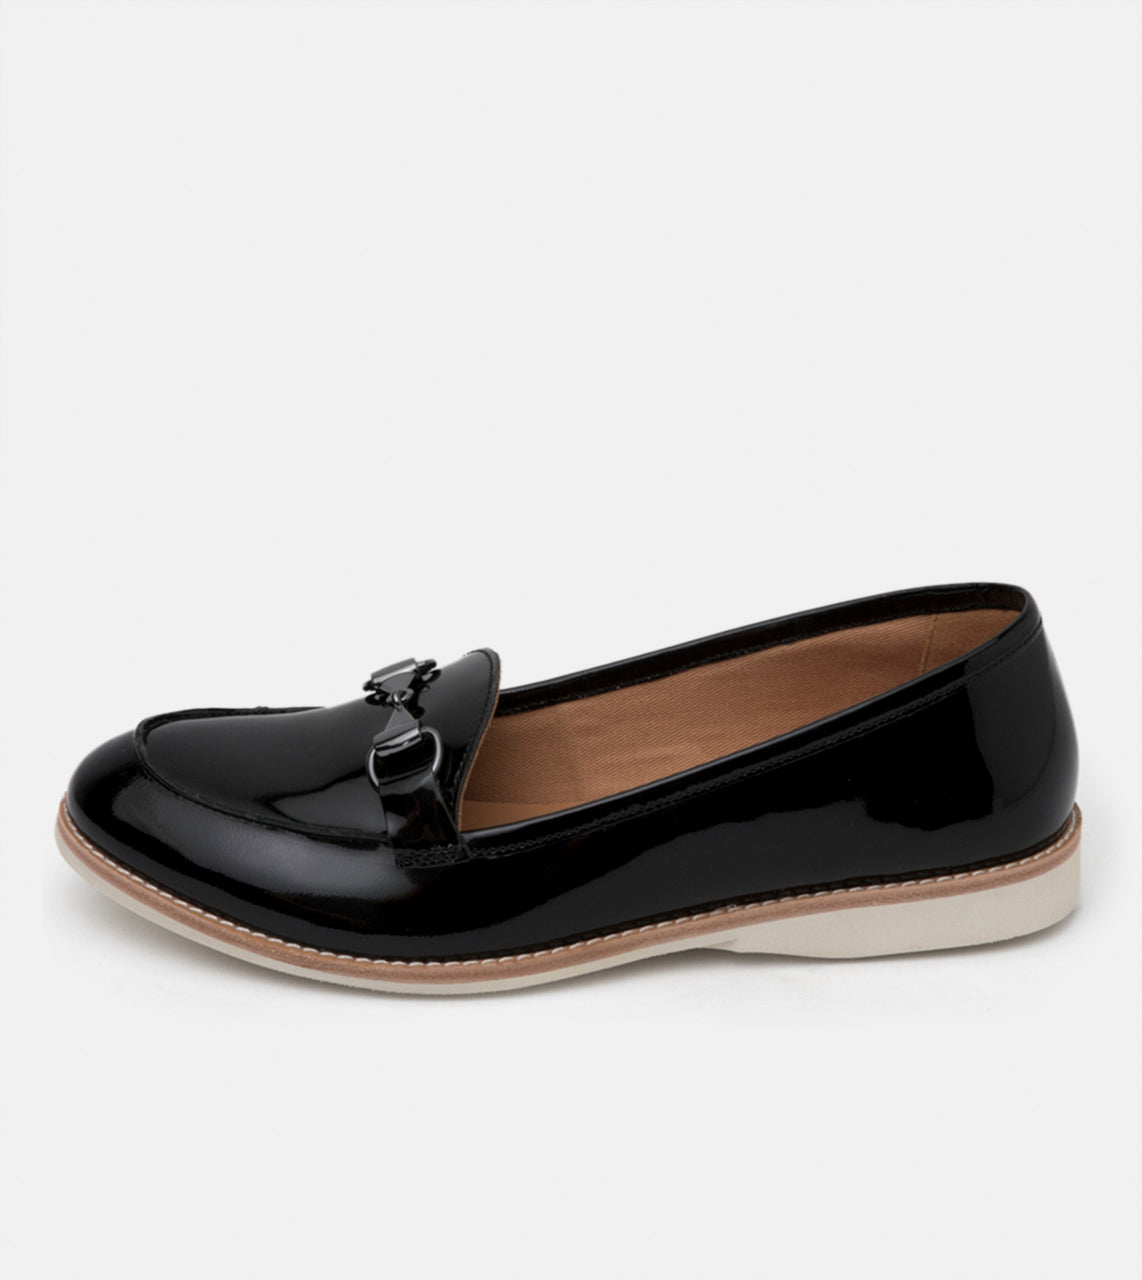 Loafer Black Patent